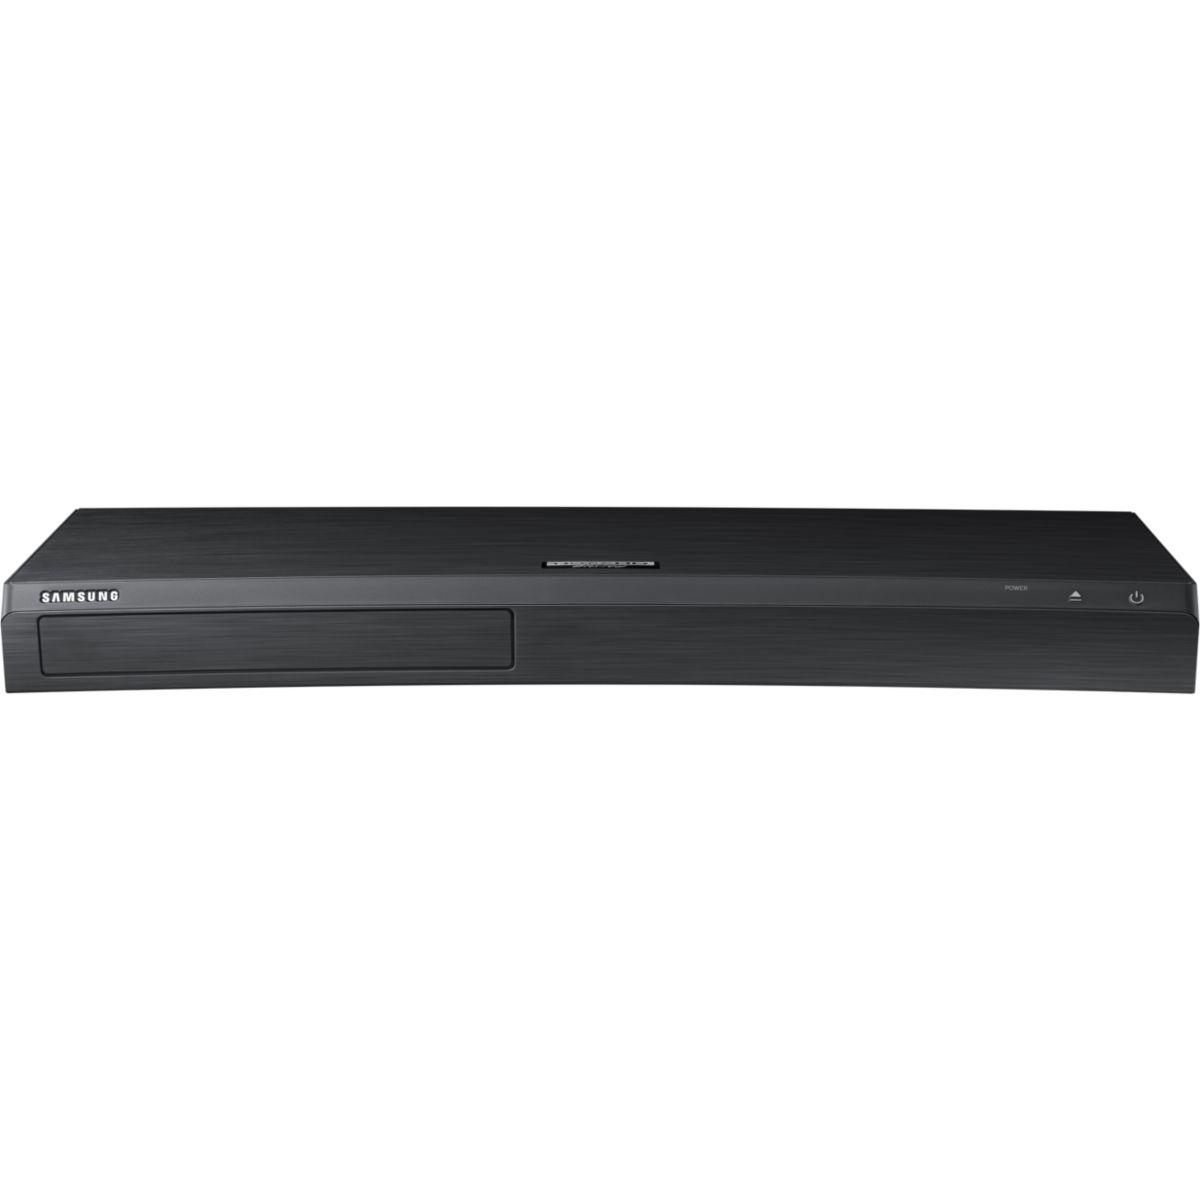 Lecteur blu ray samsung ubd-m9500 (photo)